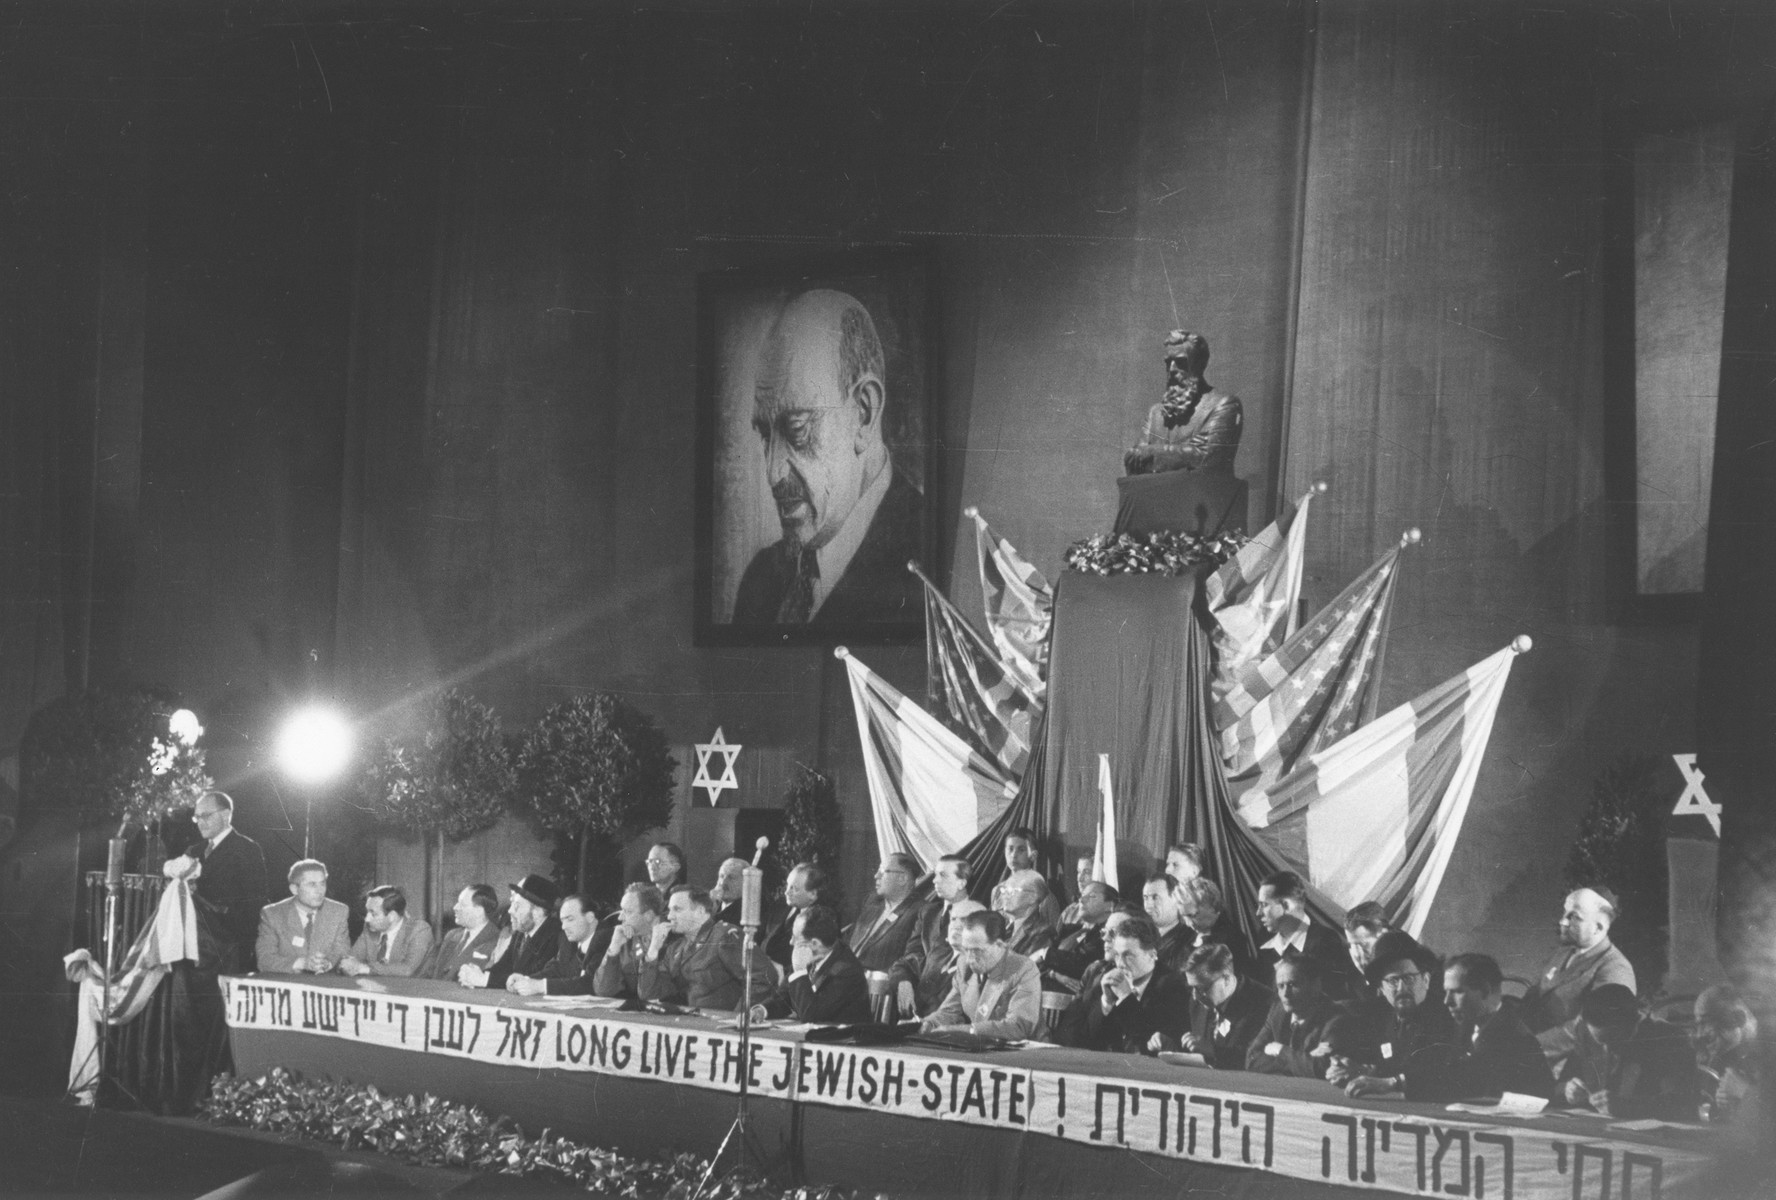 An official of the Jewish government in Palestine delivers an address to the Third Congress of the Central Committee of the Liberated Jews in the US Zone of Germany at Bad Reichenhall.